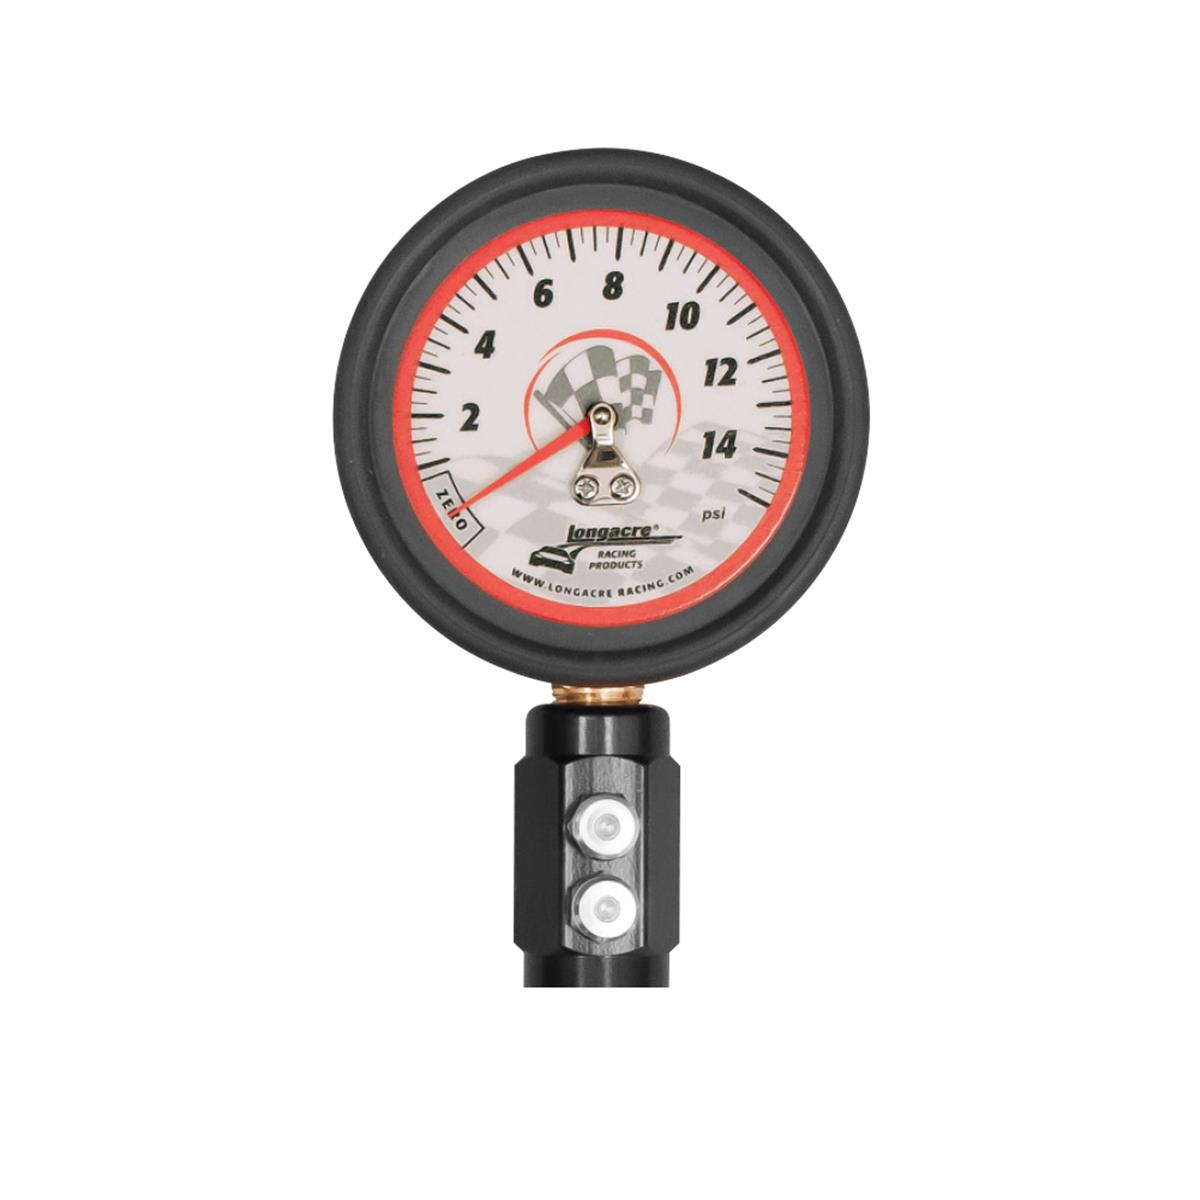 "Deluxe 2 ½"" GID Tire Gauge 0-15 by ¼ lb"